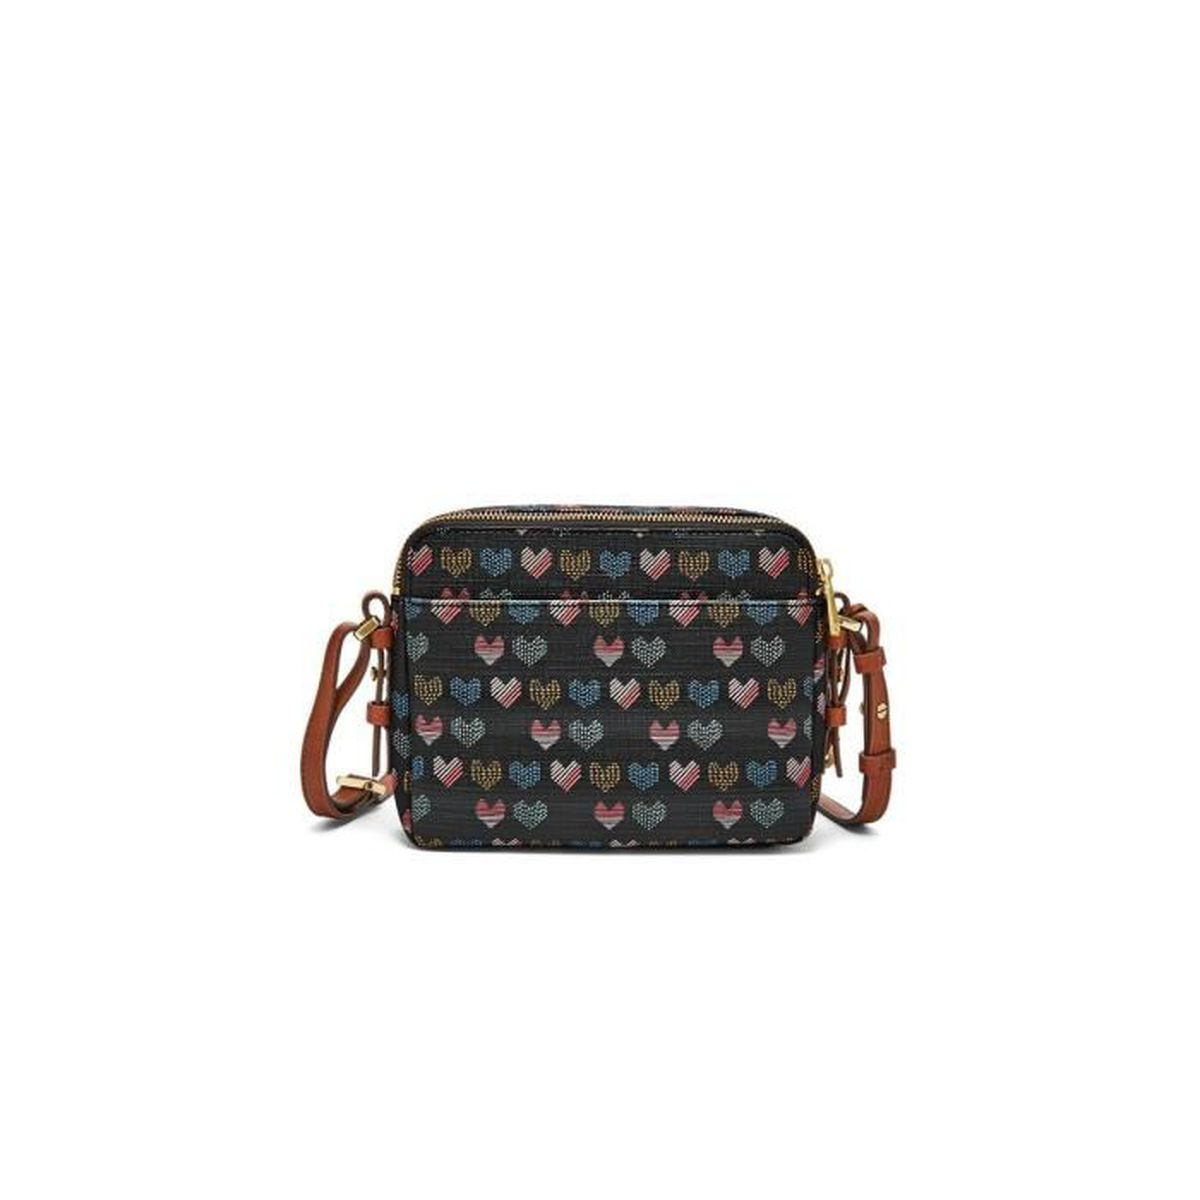 Fossil Sac 15 Achat Toasterzb7176Hearts745 9 Piper Cm Taille S5RcL4A3qj